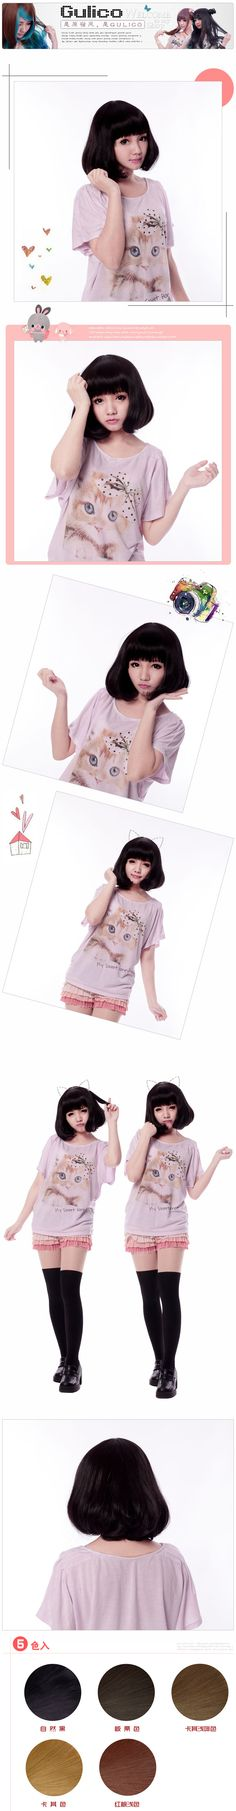 http://item.taobao.com/item.htm?spm=a230r.1.14.238.iFHPXb&id=24088152198&initiative_new=1